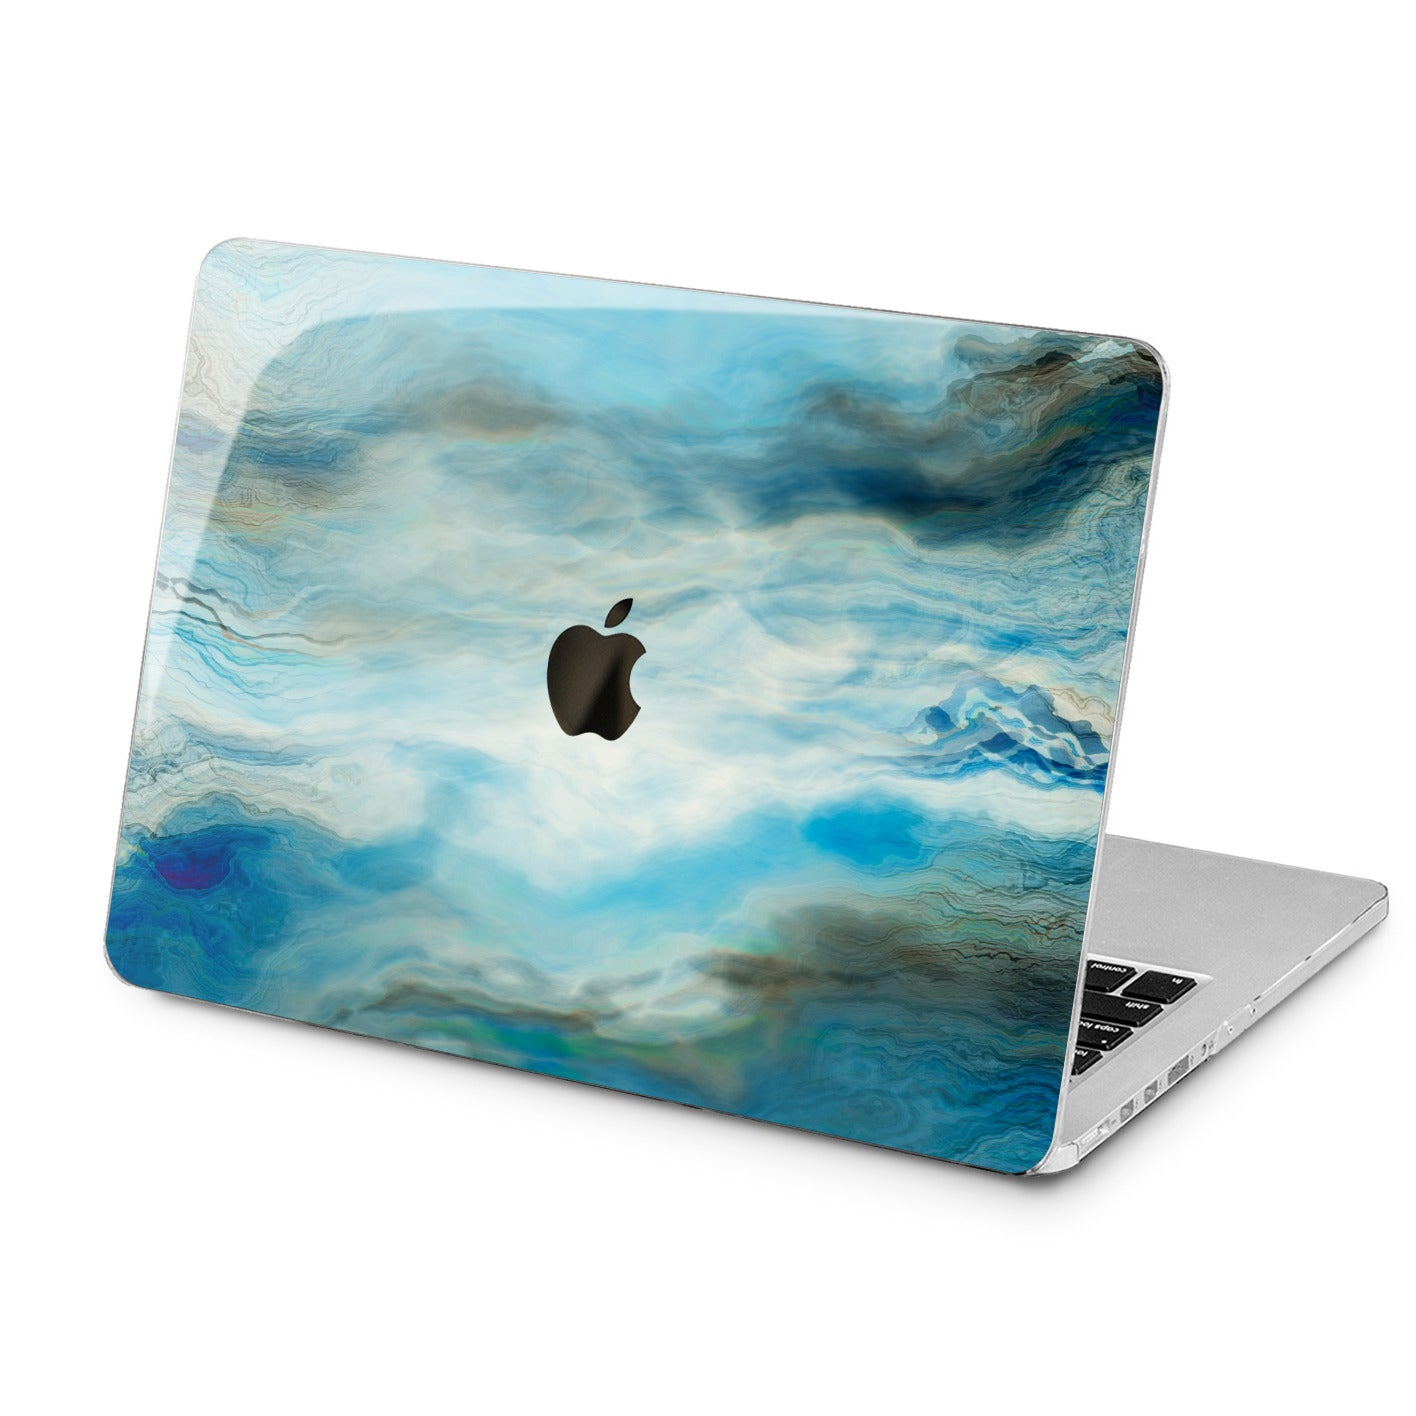 Lex Altern Lex Altern Amazing Sky Paint Case for your Laptop Apple Macbook.